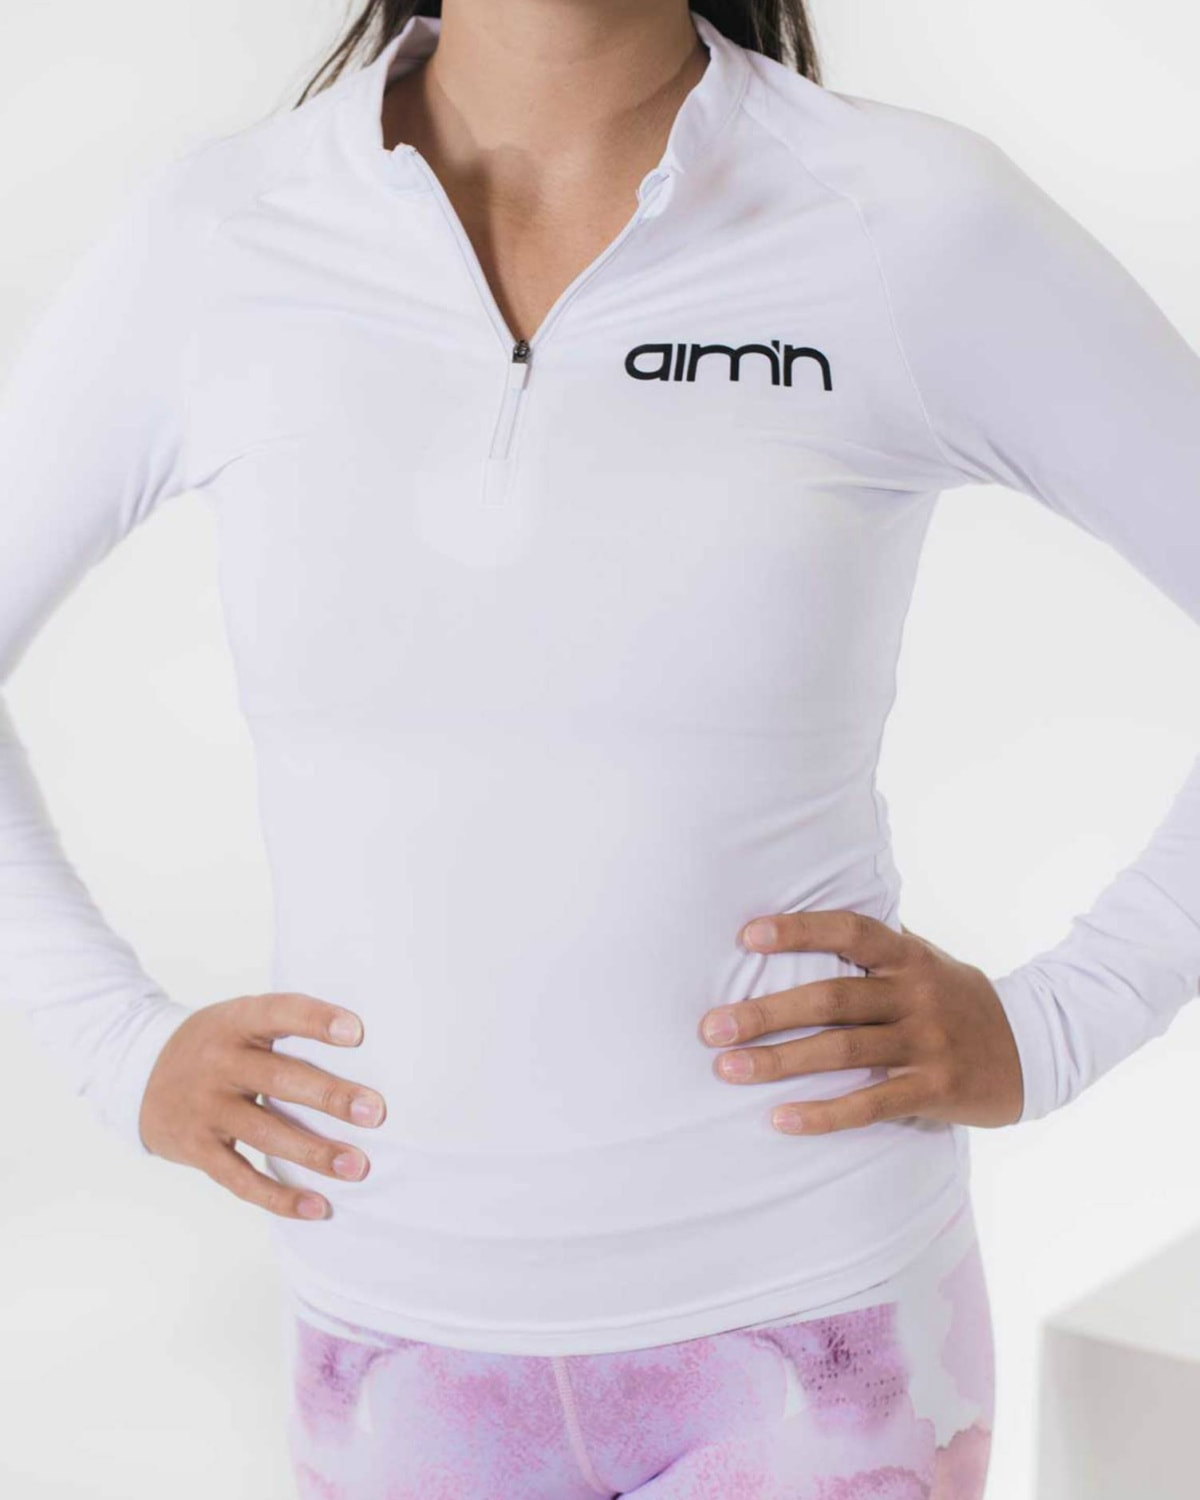 aimn_white_long_sleeve_20_1